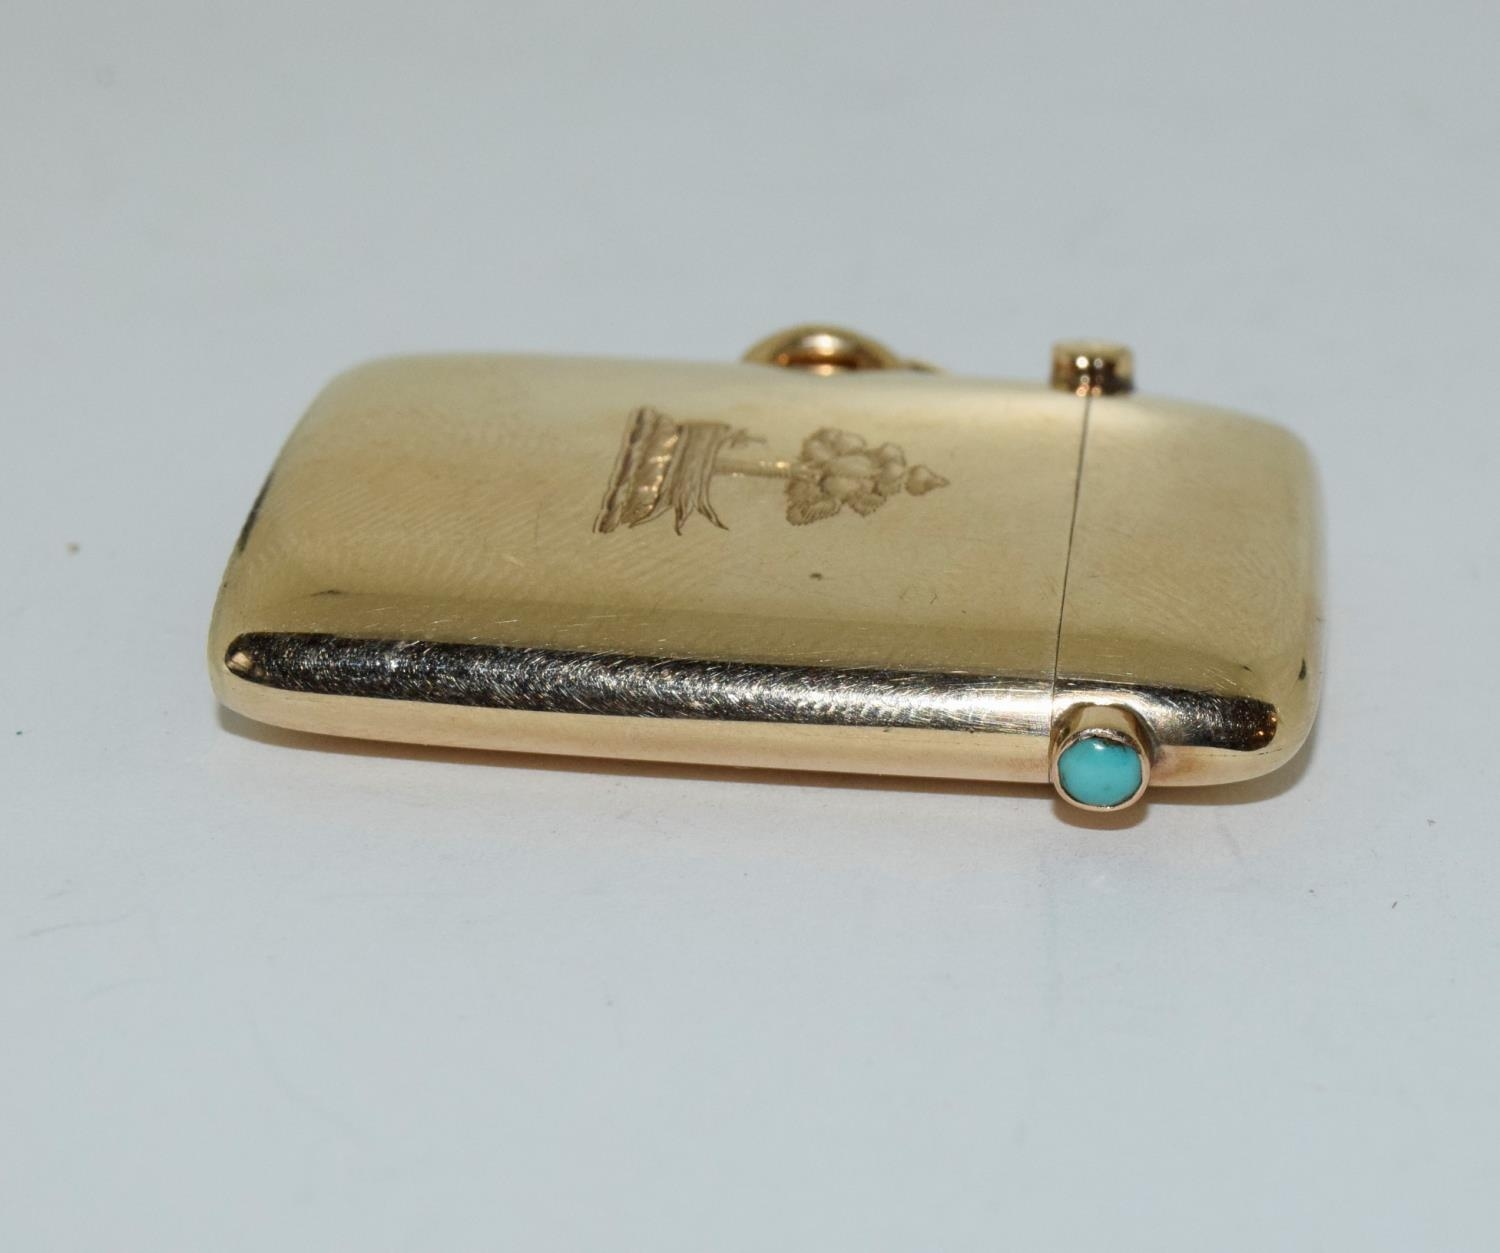 9ct gold Vesta case with a turquoise cabochon fully hallmarked for London 1878 by George Gray - Image 4 of 6